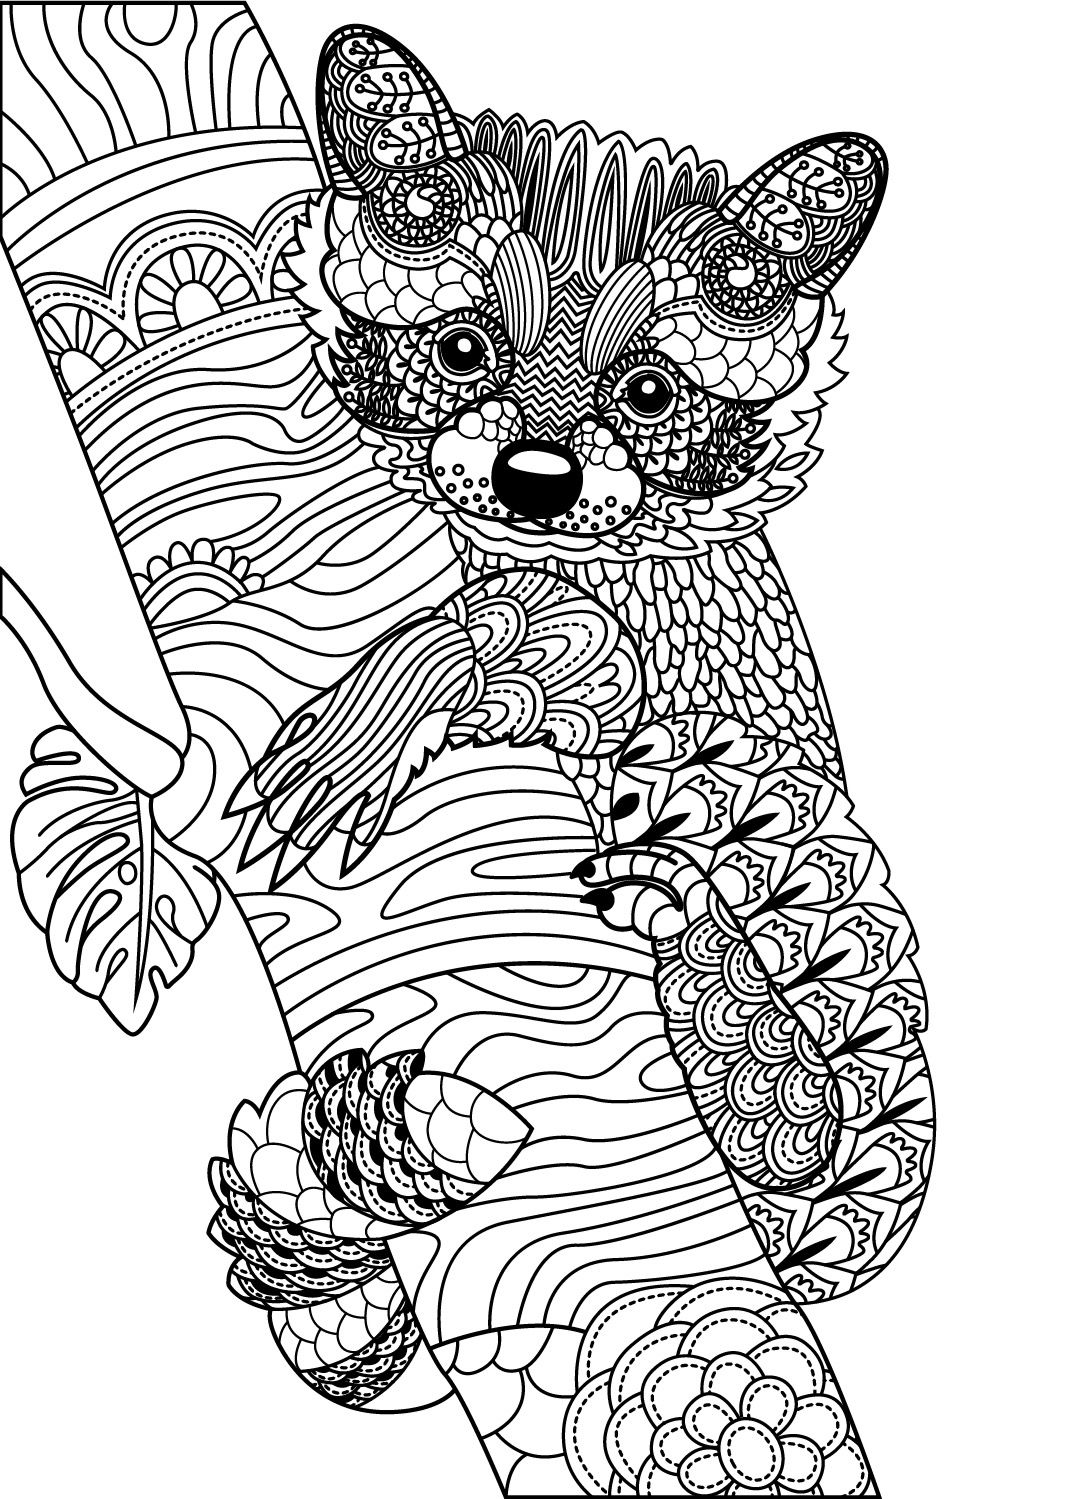 Wild Animals to color | Colorish: free coloring app for ... | coloring books for adults animals